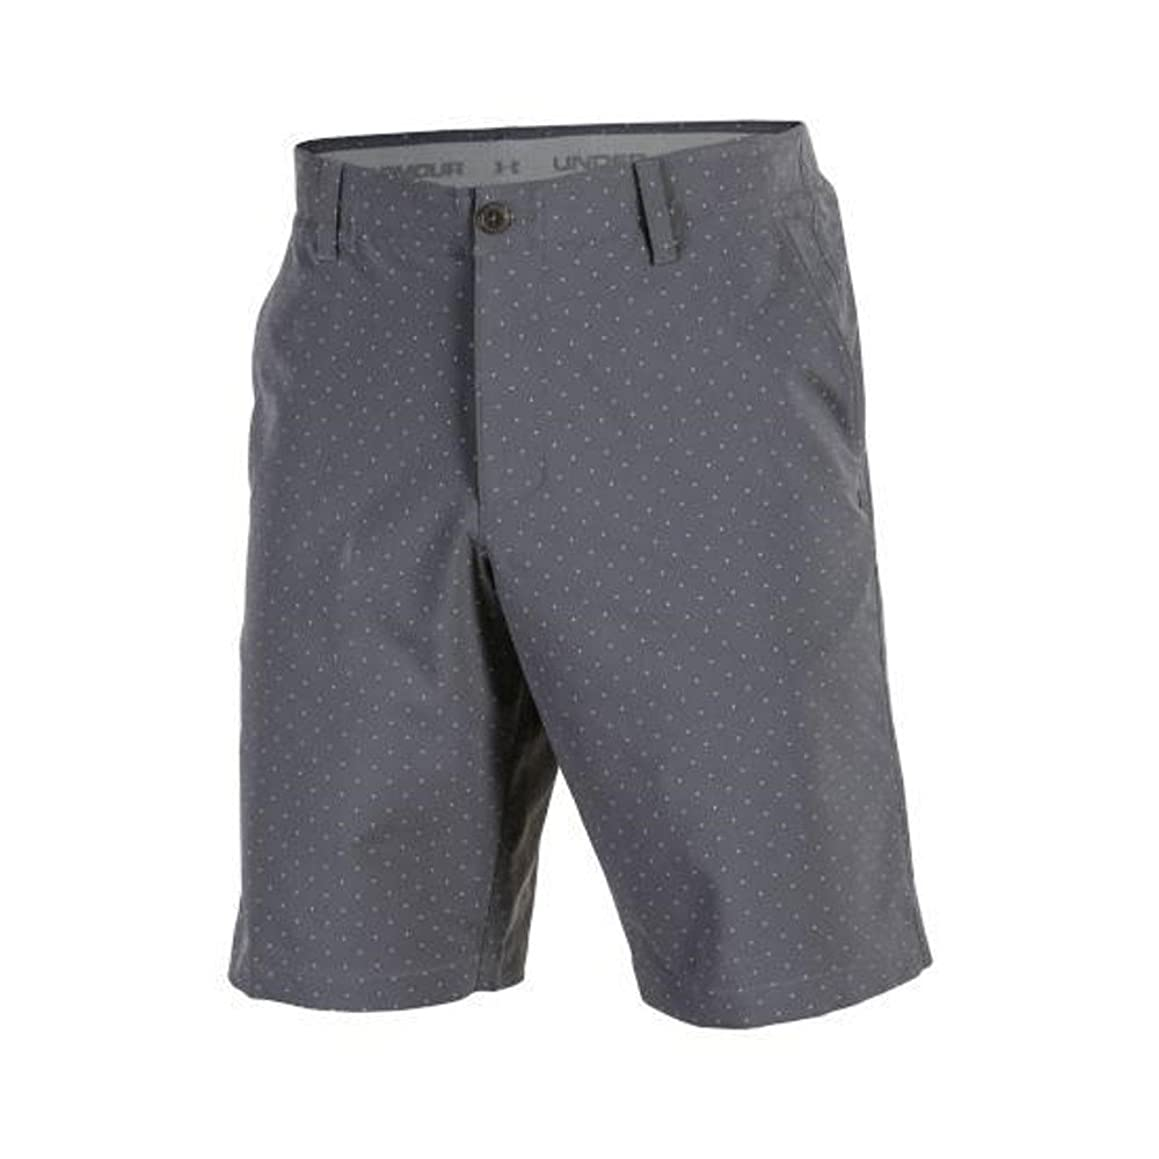 Under Armour NEW Men's Match Play Novelty Golf Shorts Rhino Grey Size 32